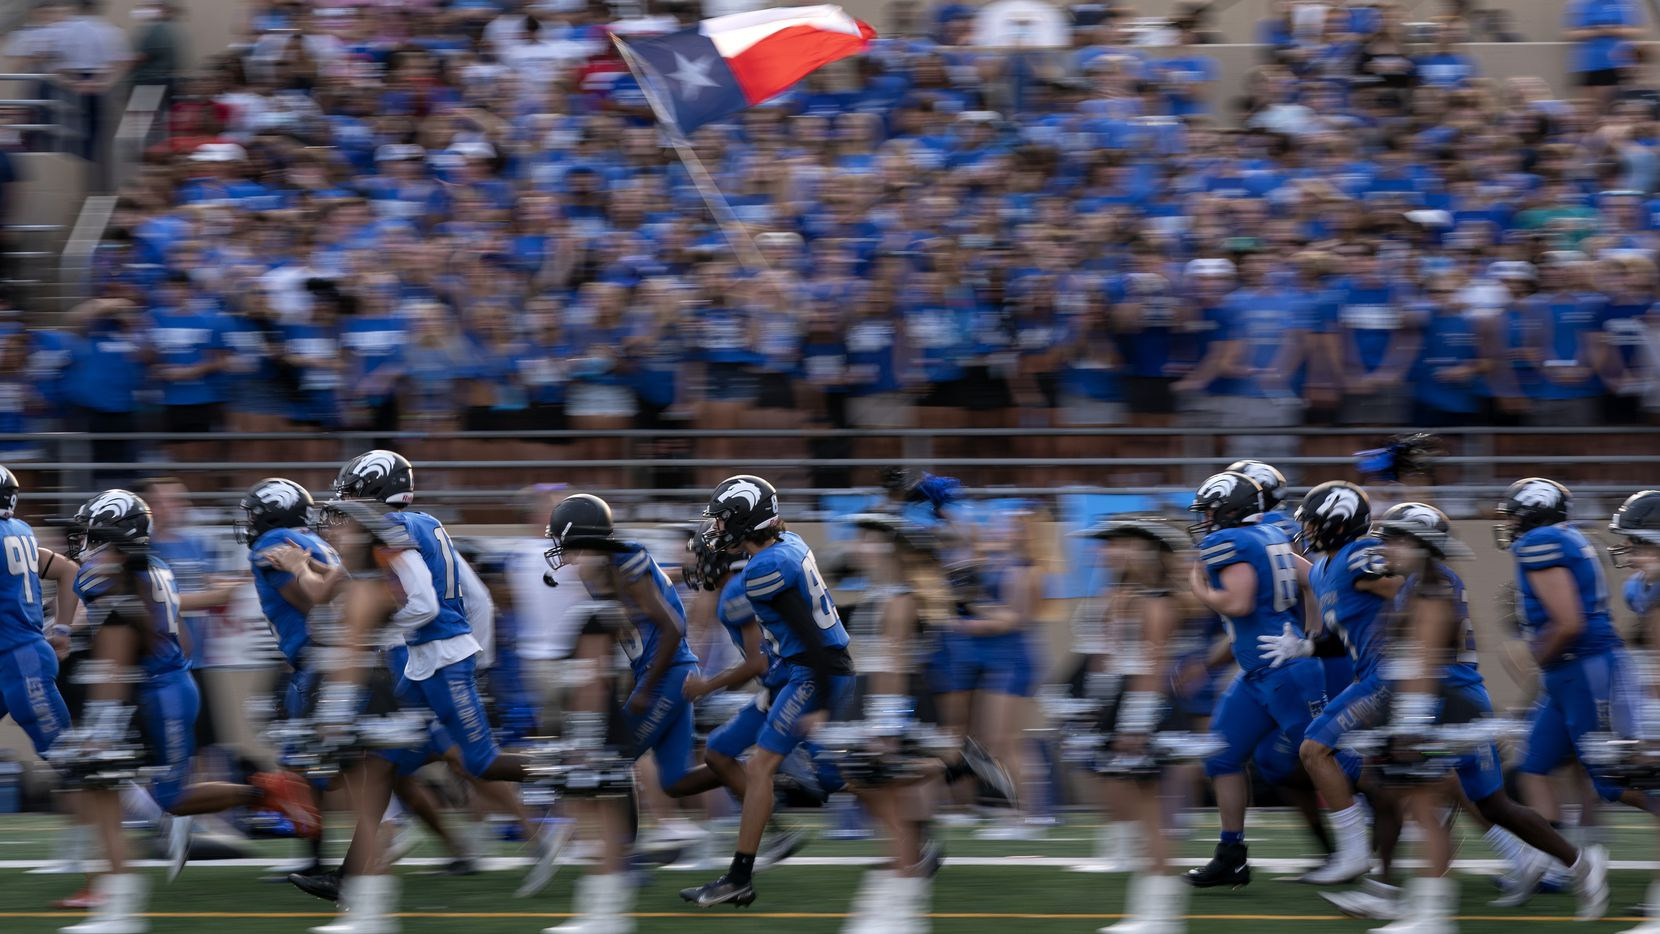 Plano West takes the field before a high school football game against Little Elm on Friday, Sept. 10, 2021 at John Clark Stadium in Plano, Texas. Little Elm won 35-31.